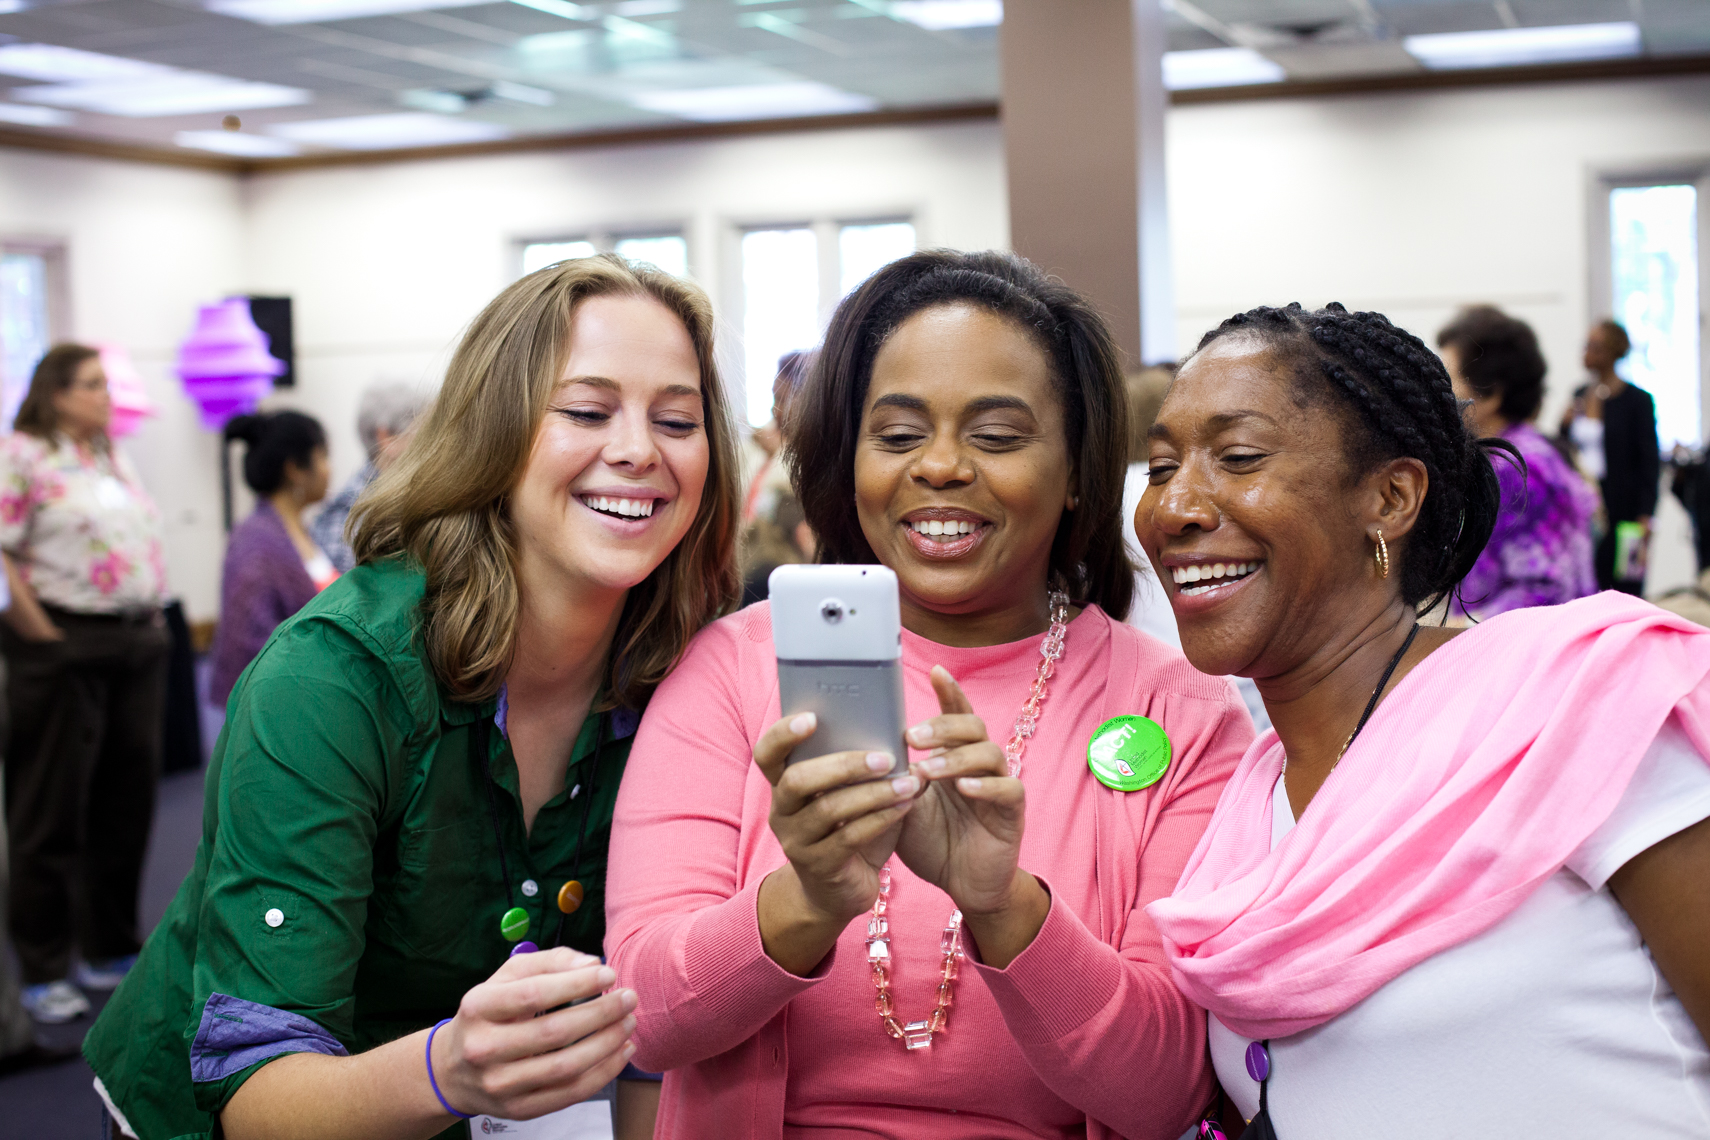 Women laughing together at a conference, diverse, happy smiling, work, selfie, event photographer, diversity, authentic, playful, happy, stock photo, Nashville event photographer, Nashville advertising photographer